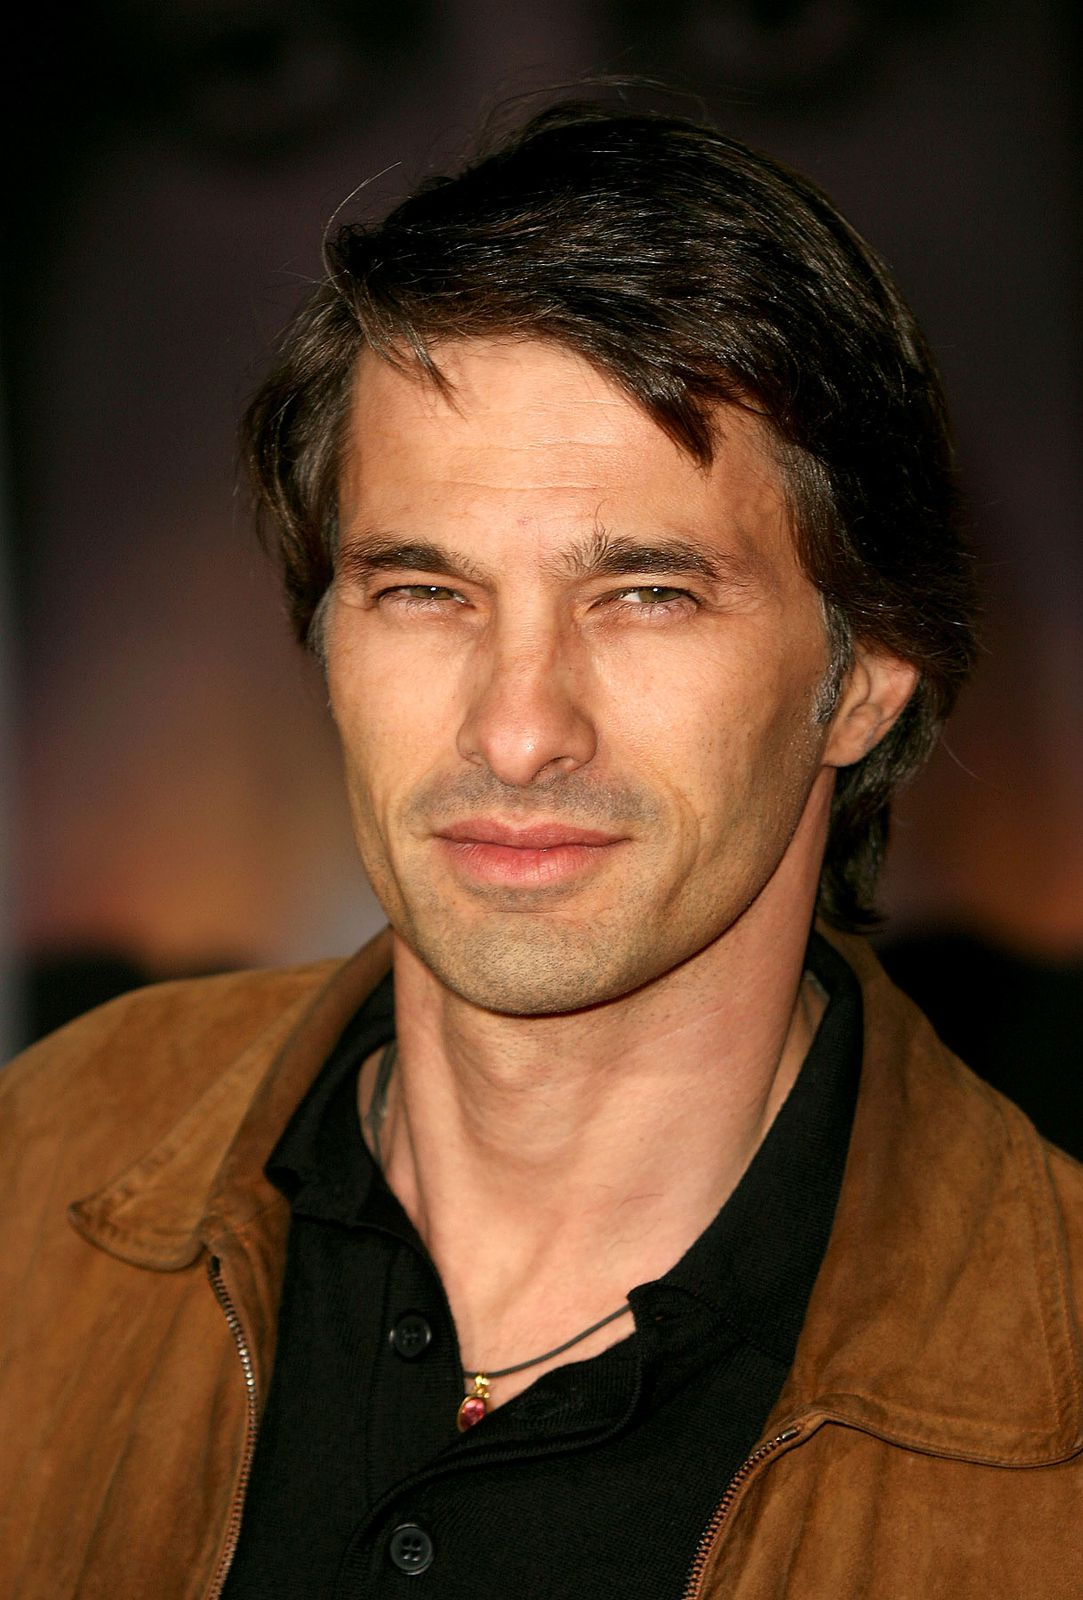 PHOTO OLIVIER MARTINEZ REF MAR220720131